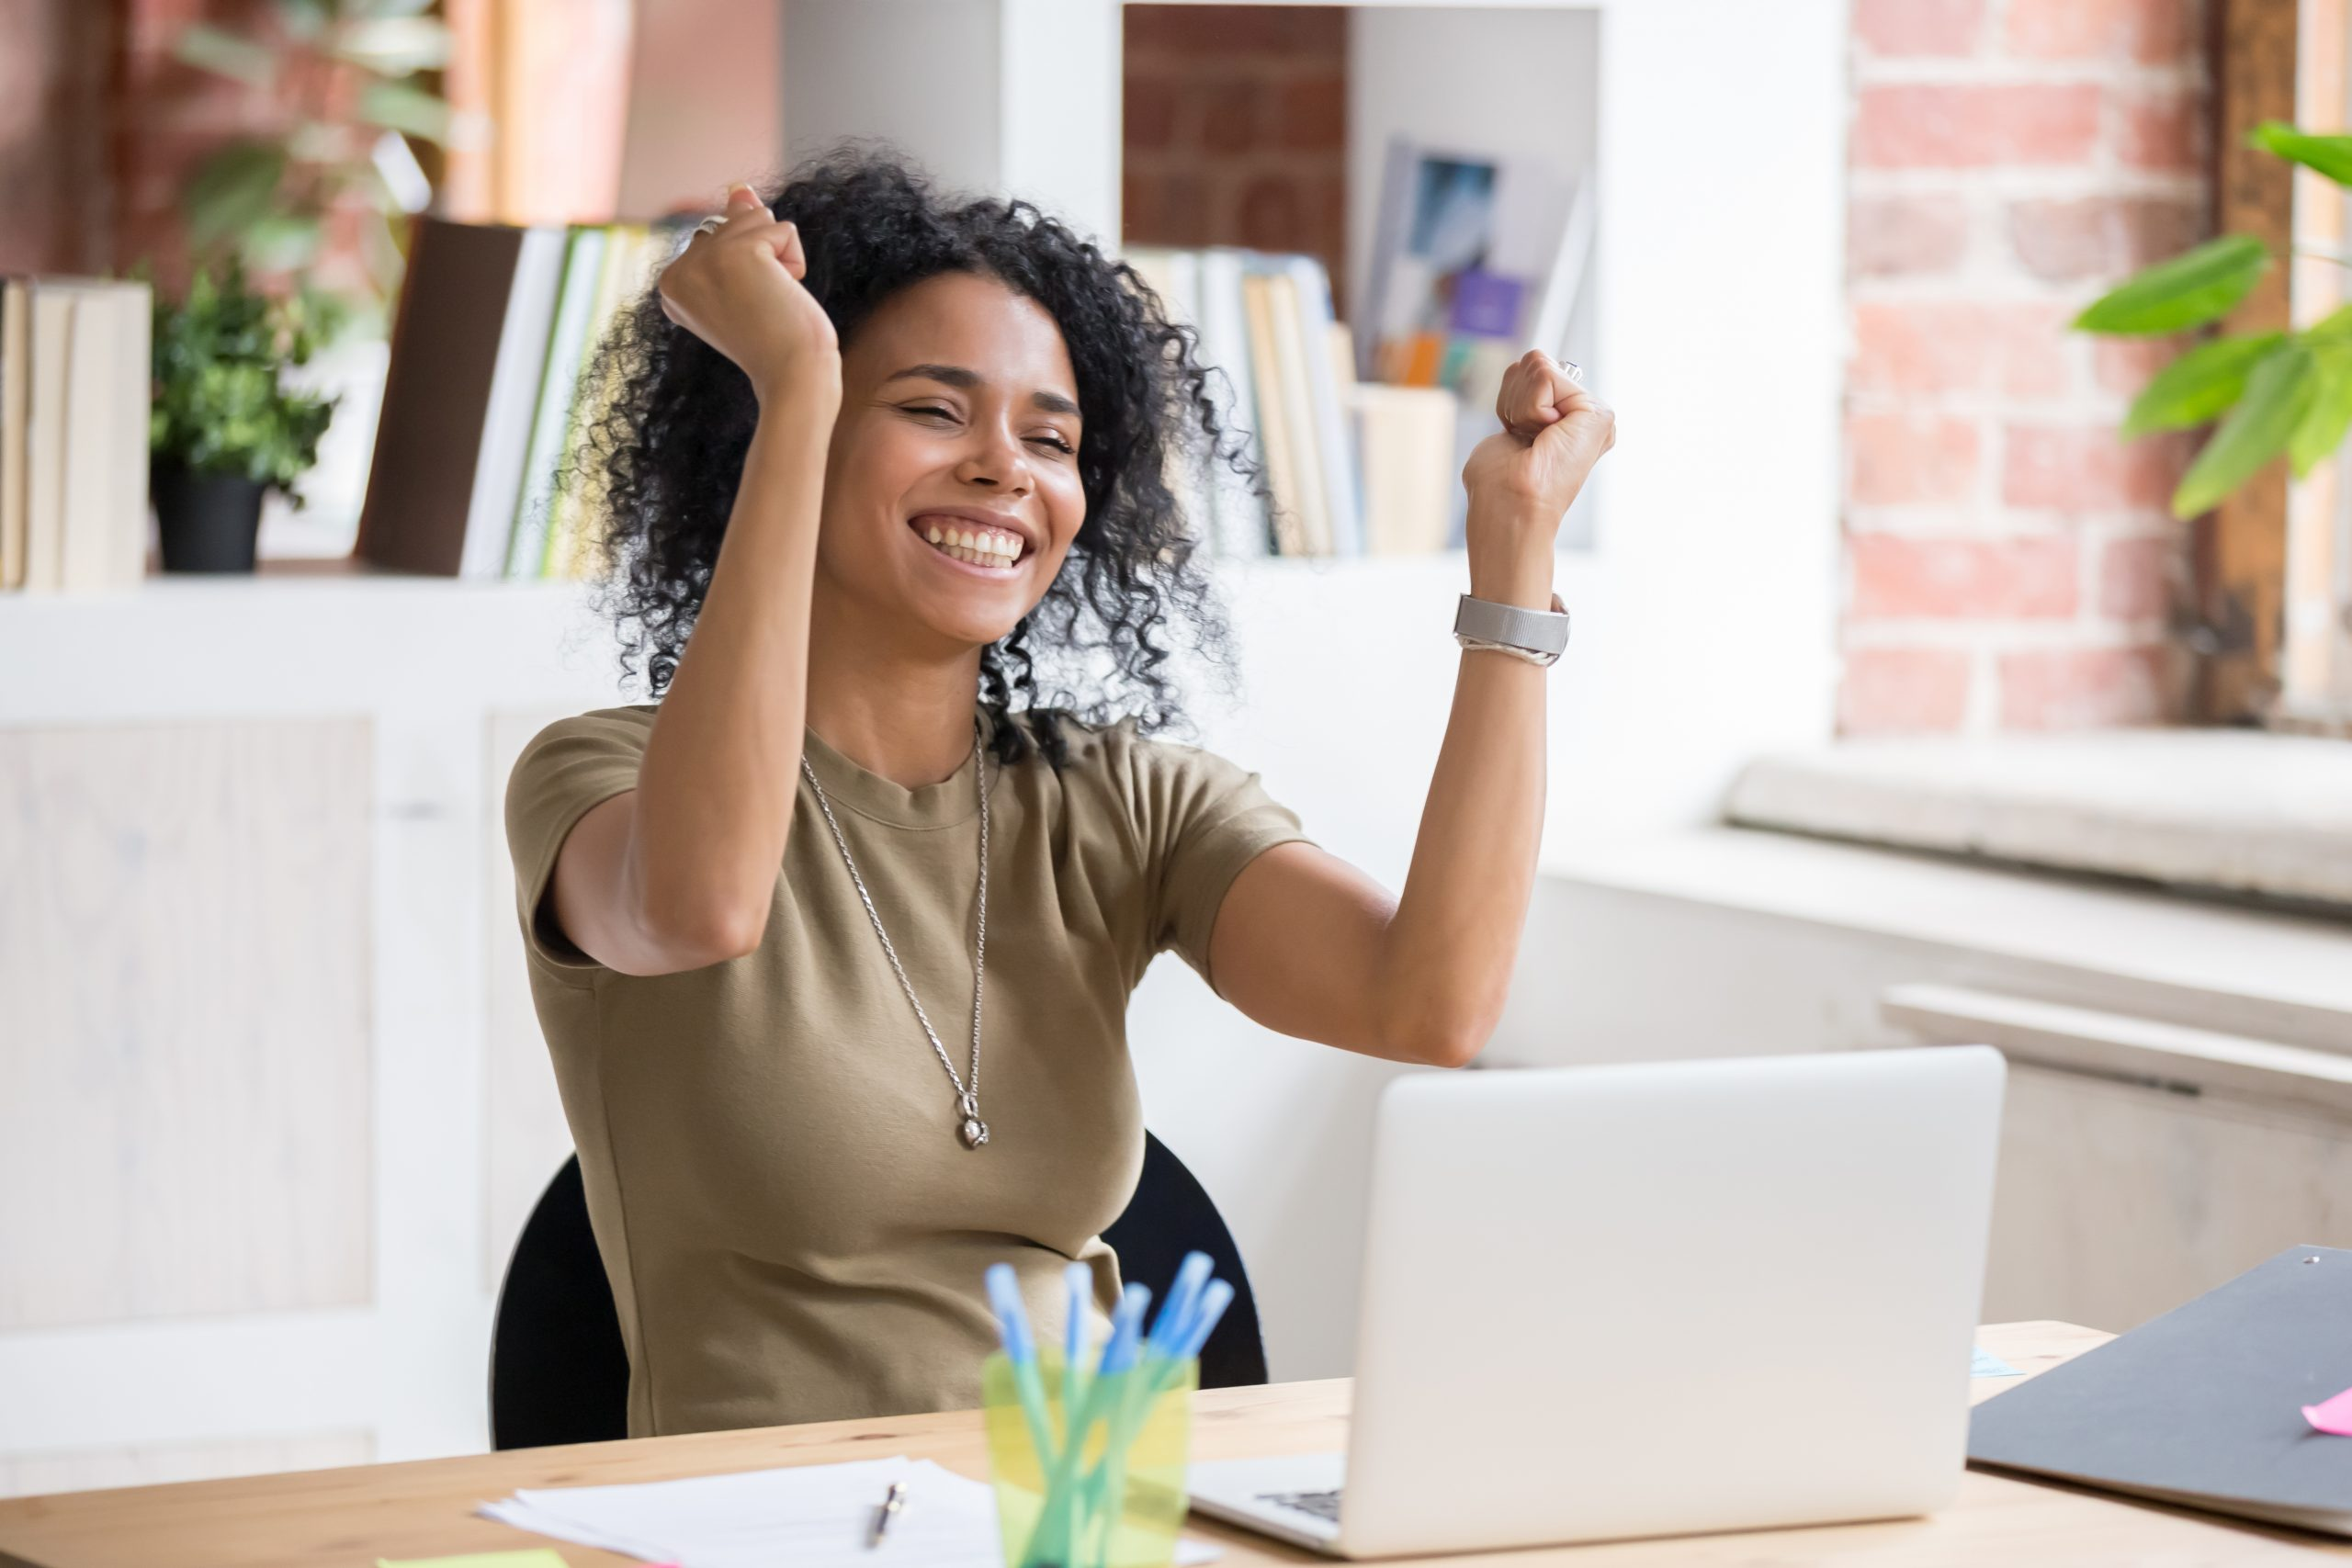 A woman at a computer smiling and raising her hands in celebration